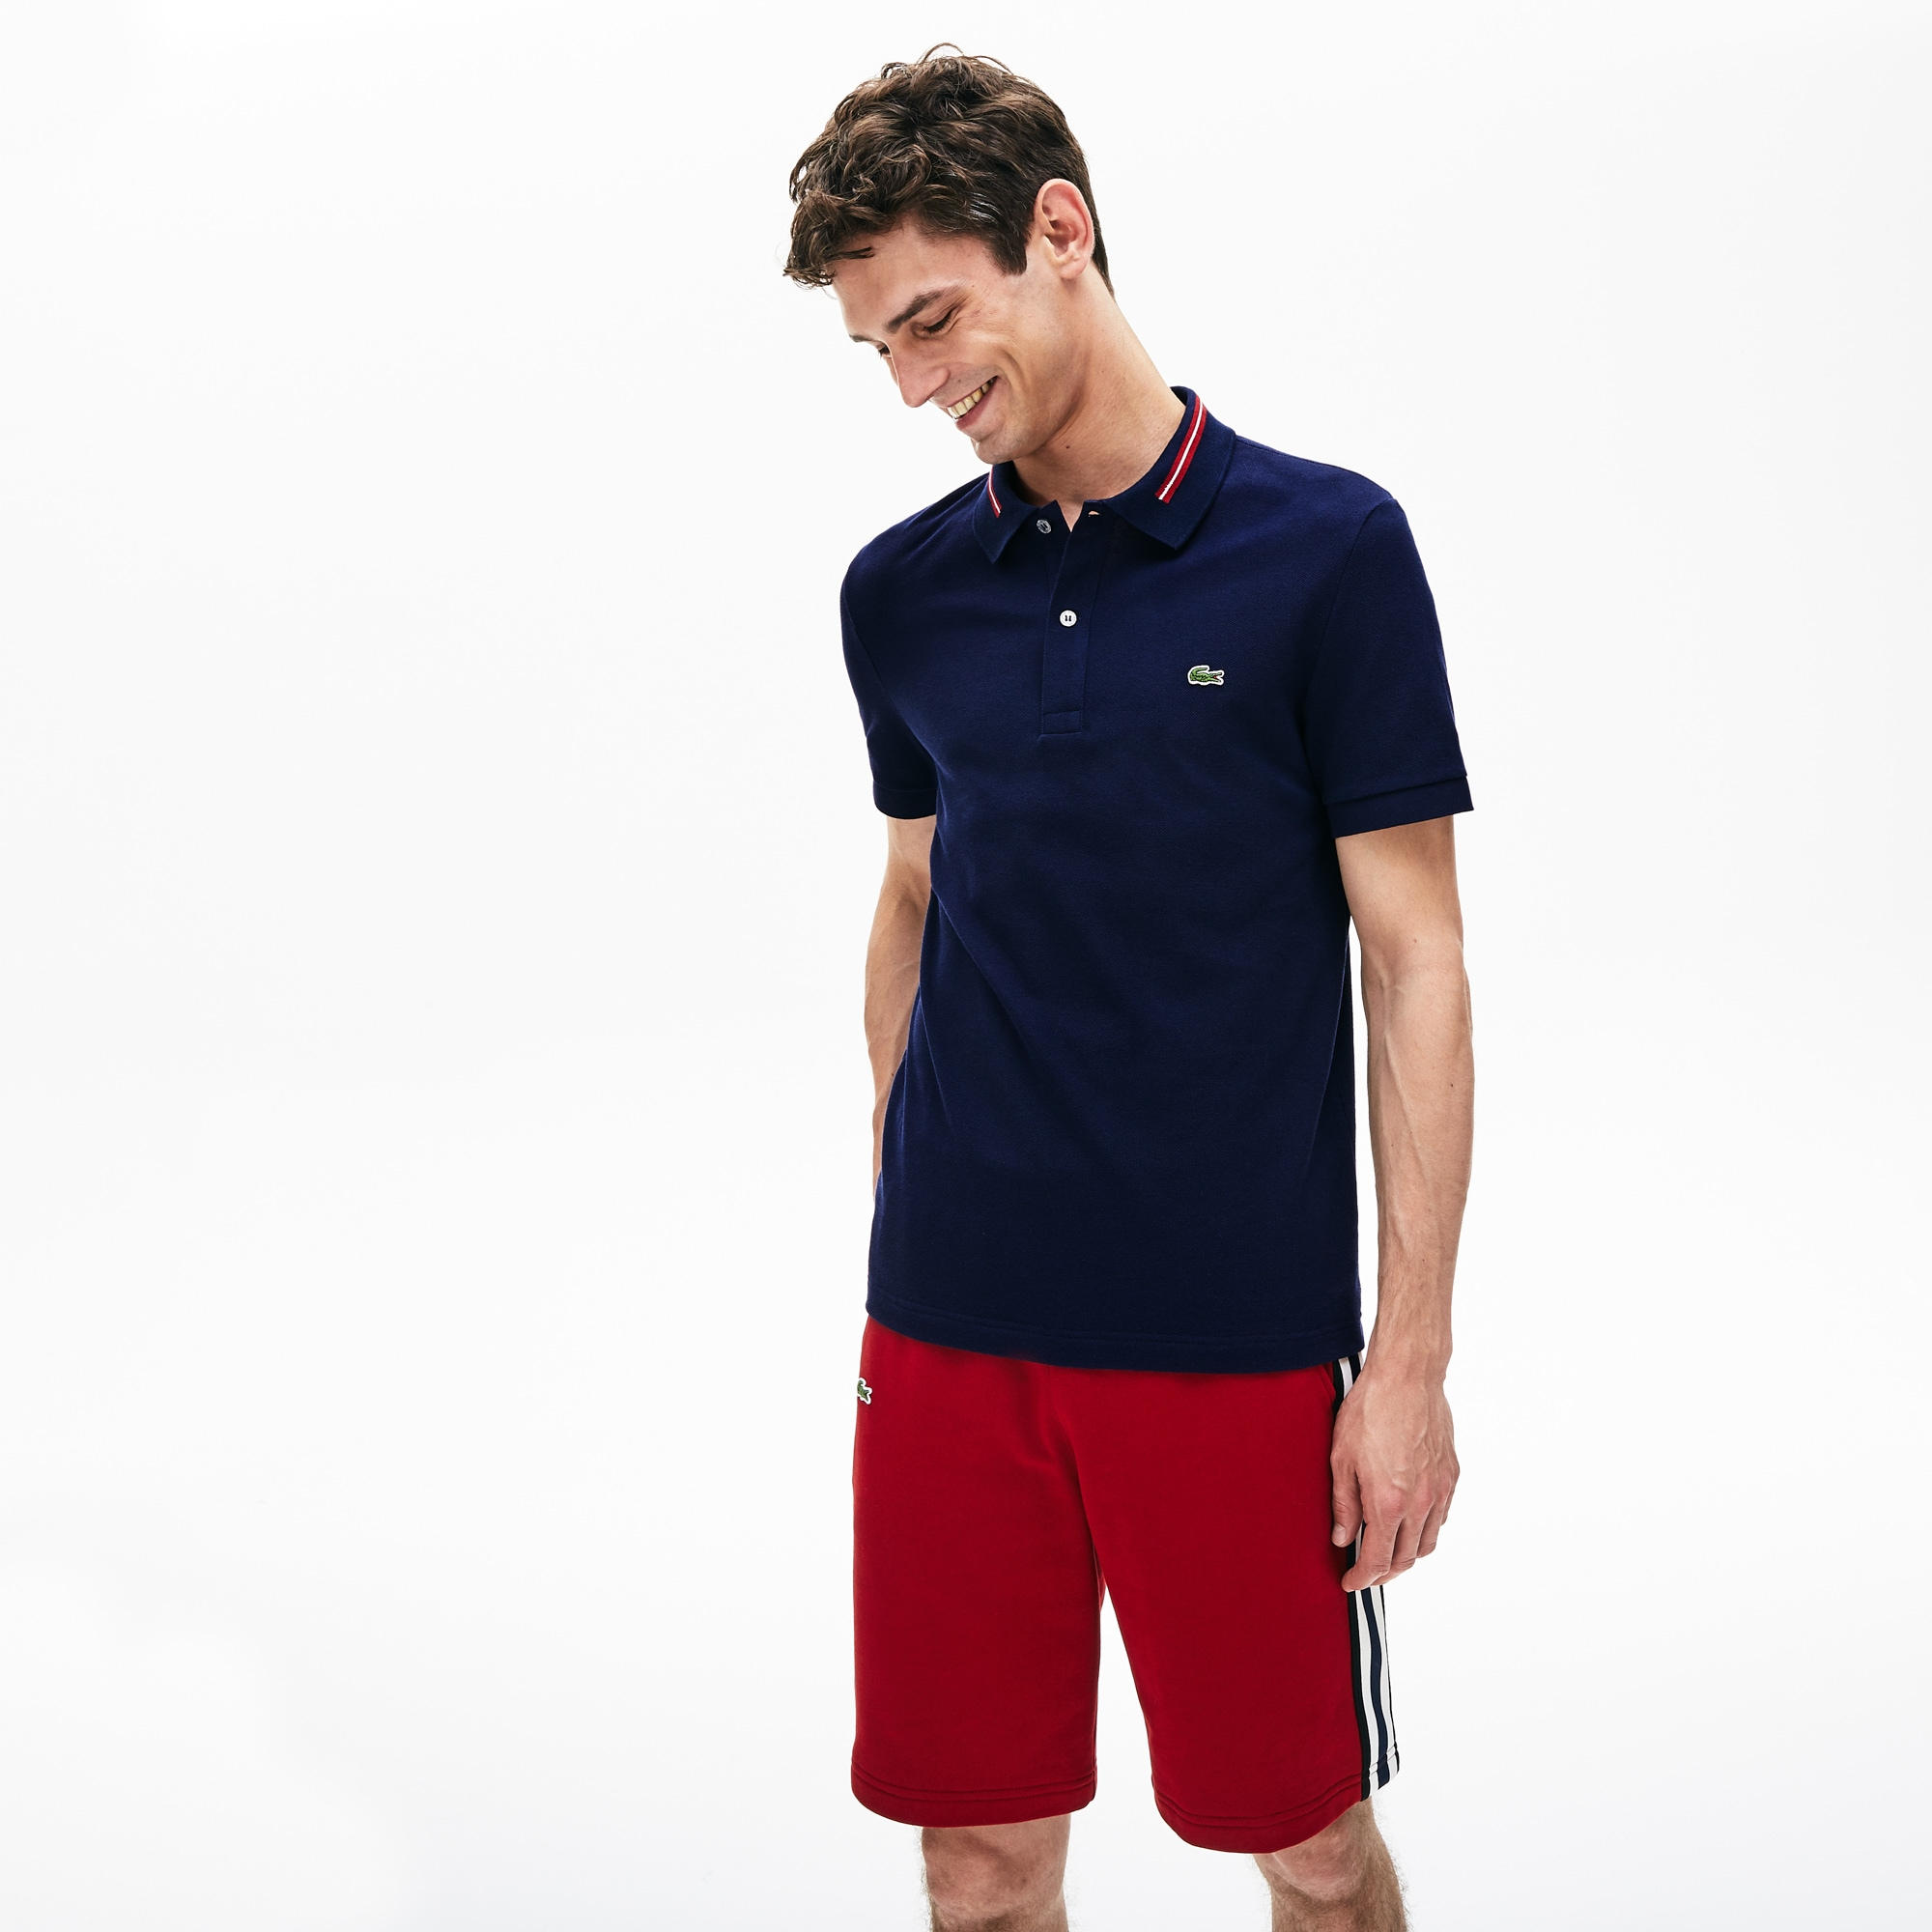 Men's Lacoste Slim Fit Striped Accents Cotton Piqué Polo Shirt